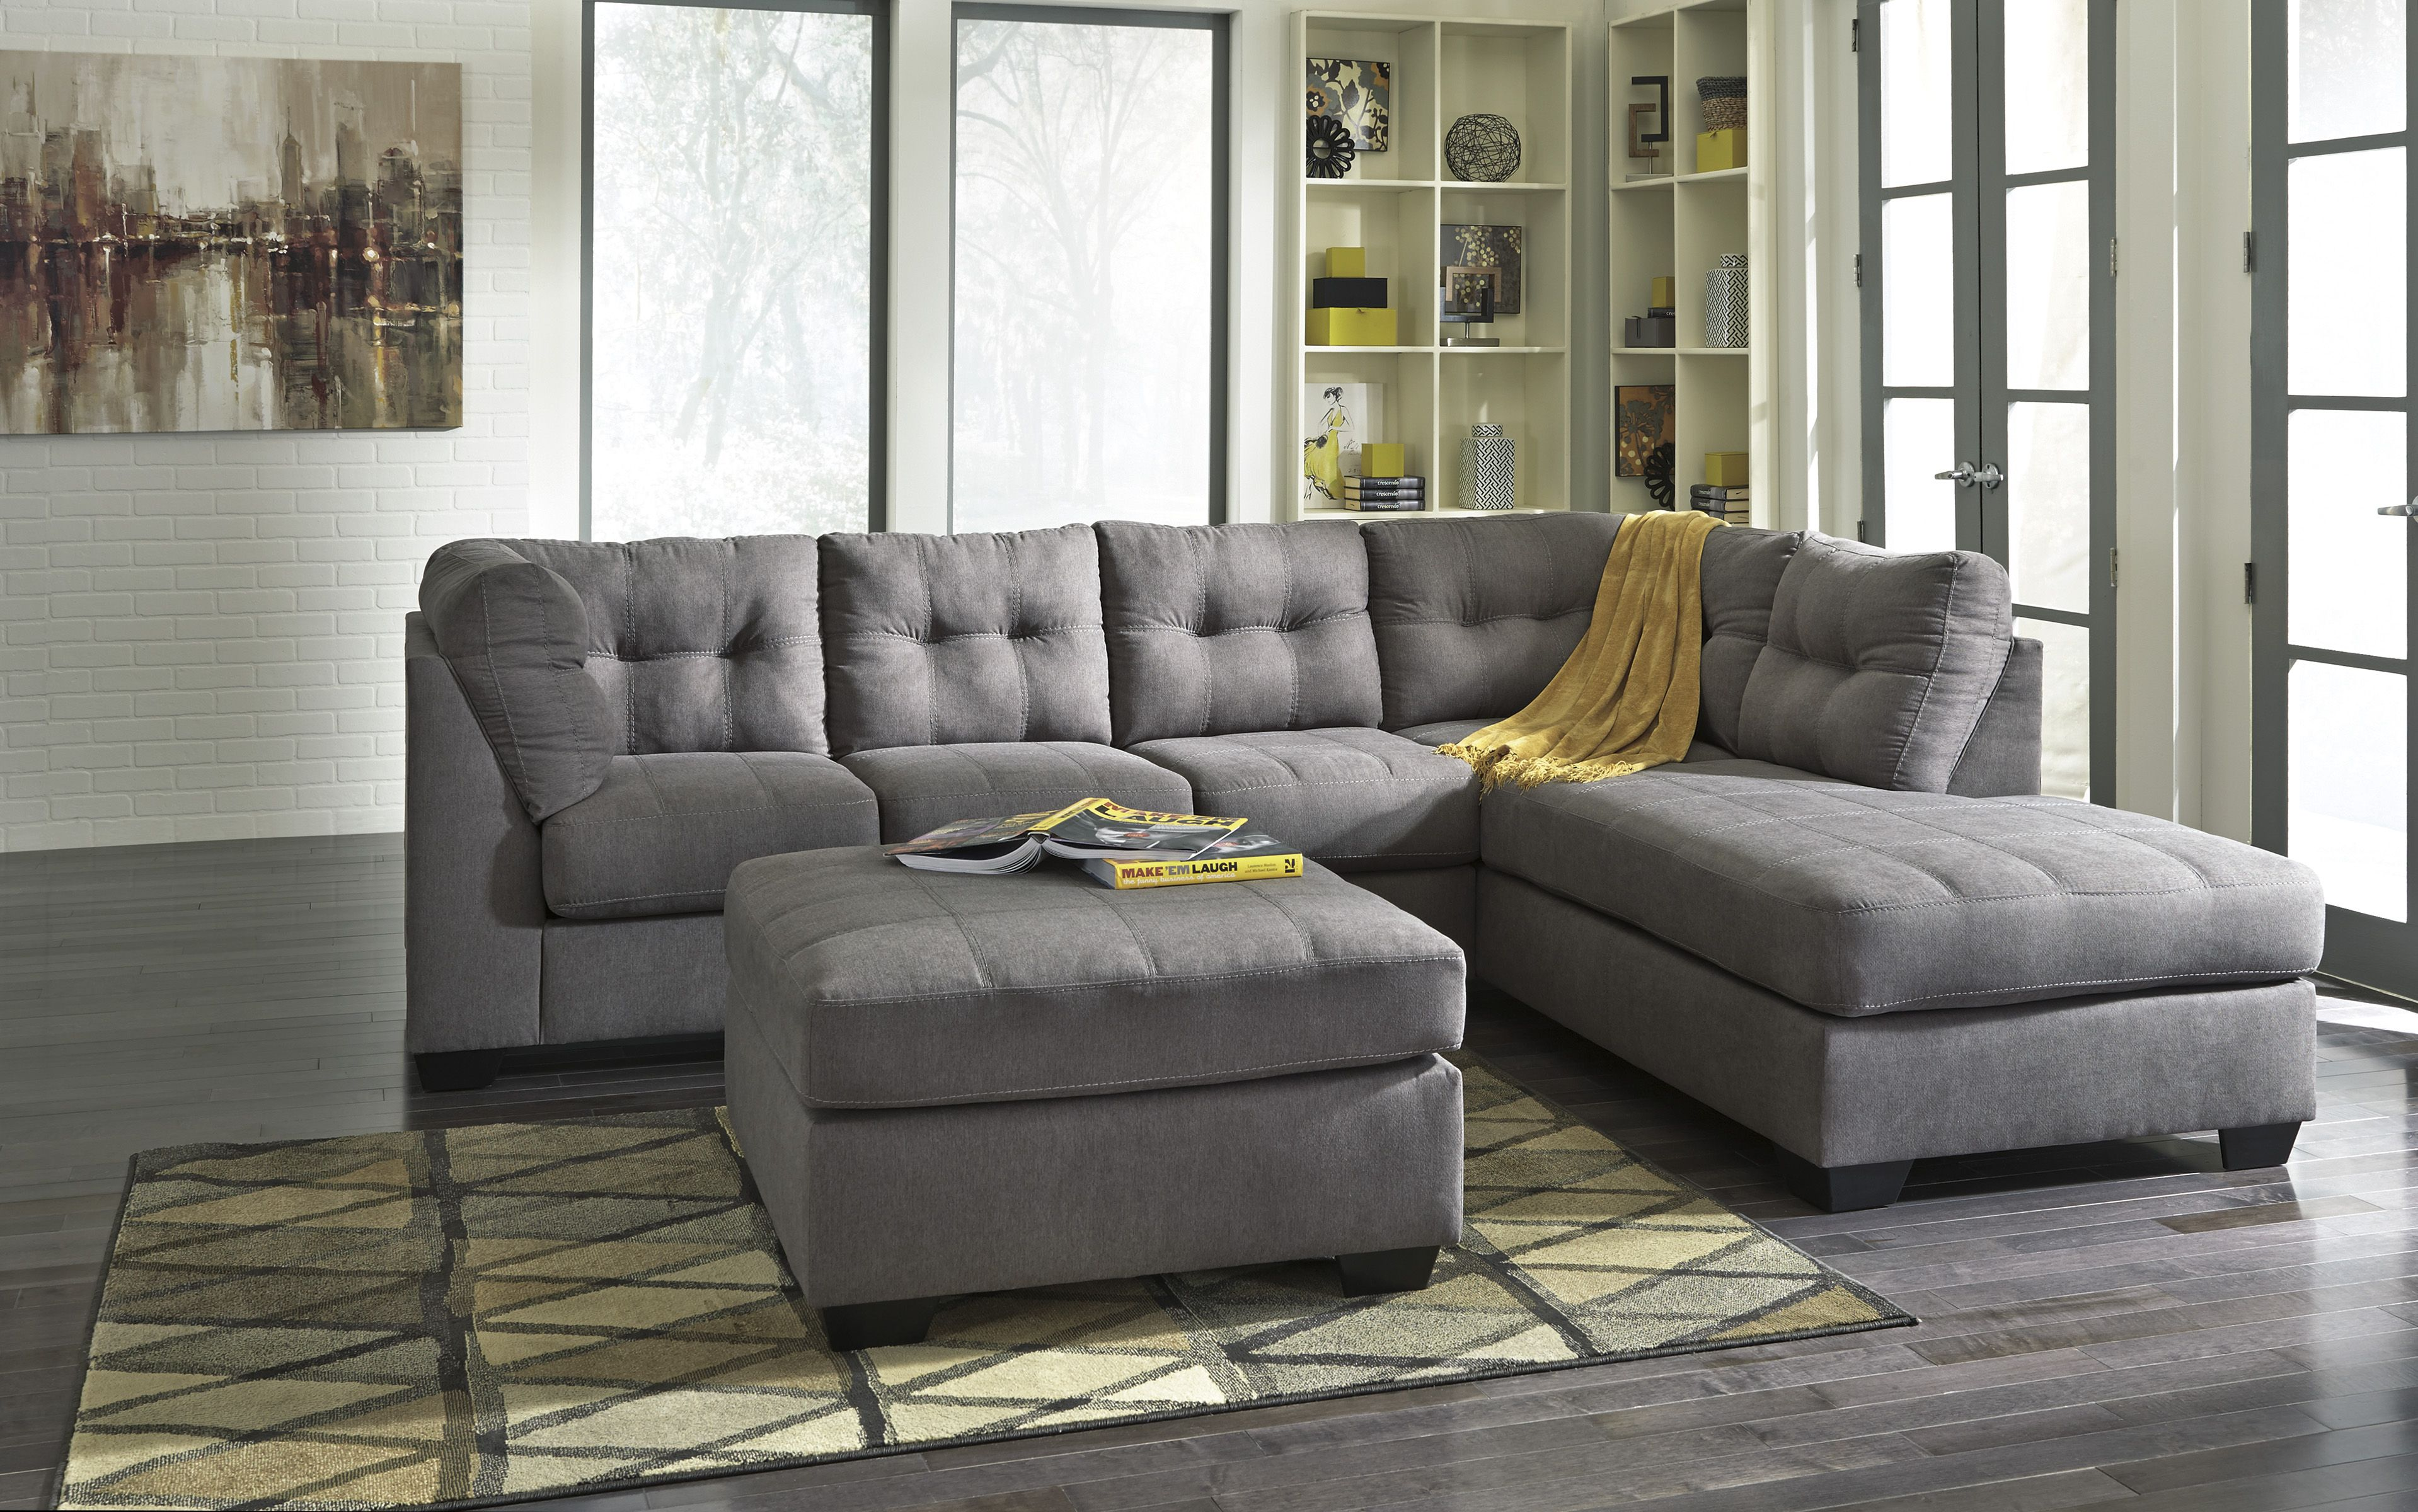 Charcoal 2 Piece Sectional 699 Ashley Furniture Sectional Ashley Furniture Sofas Grey Sectional Couch